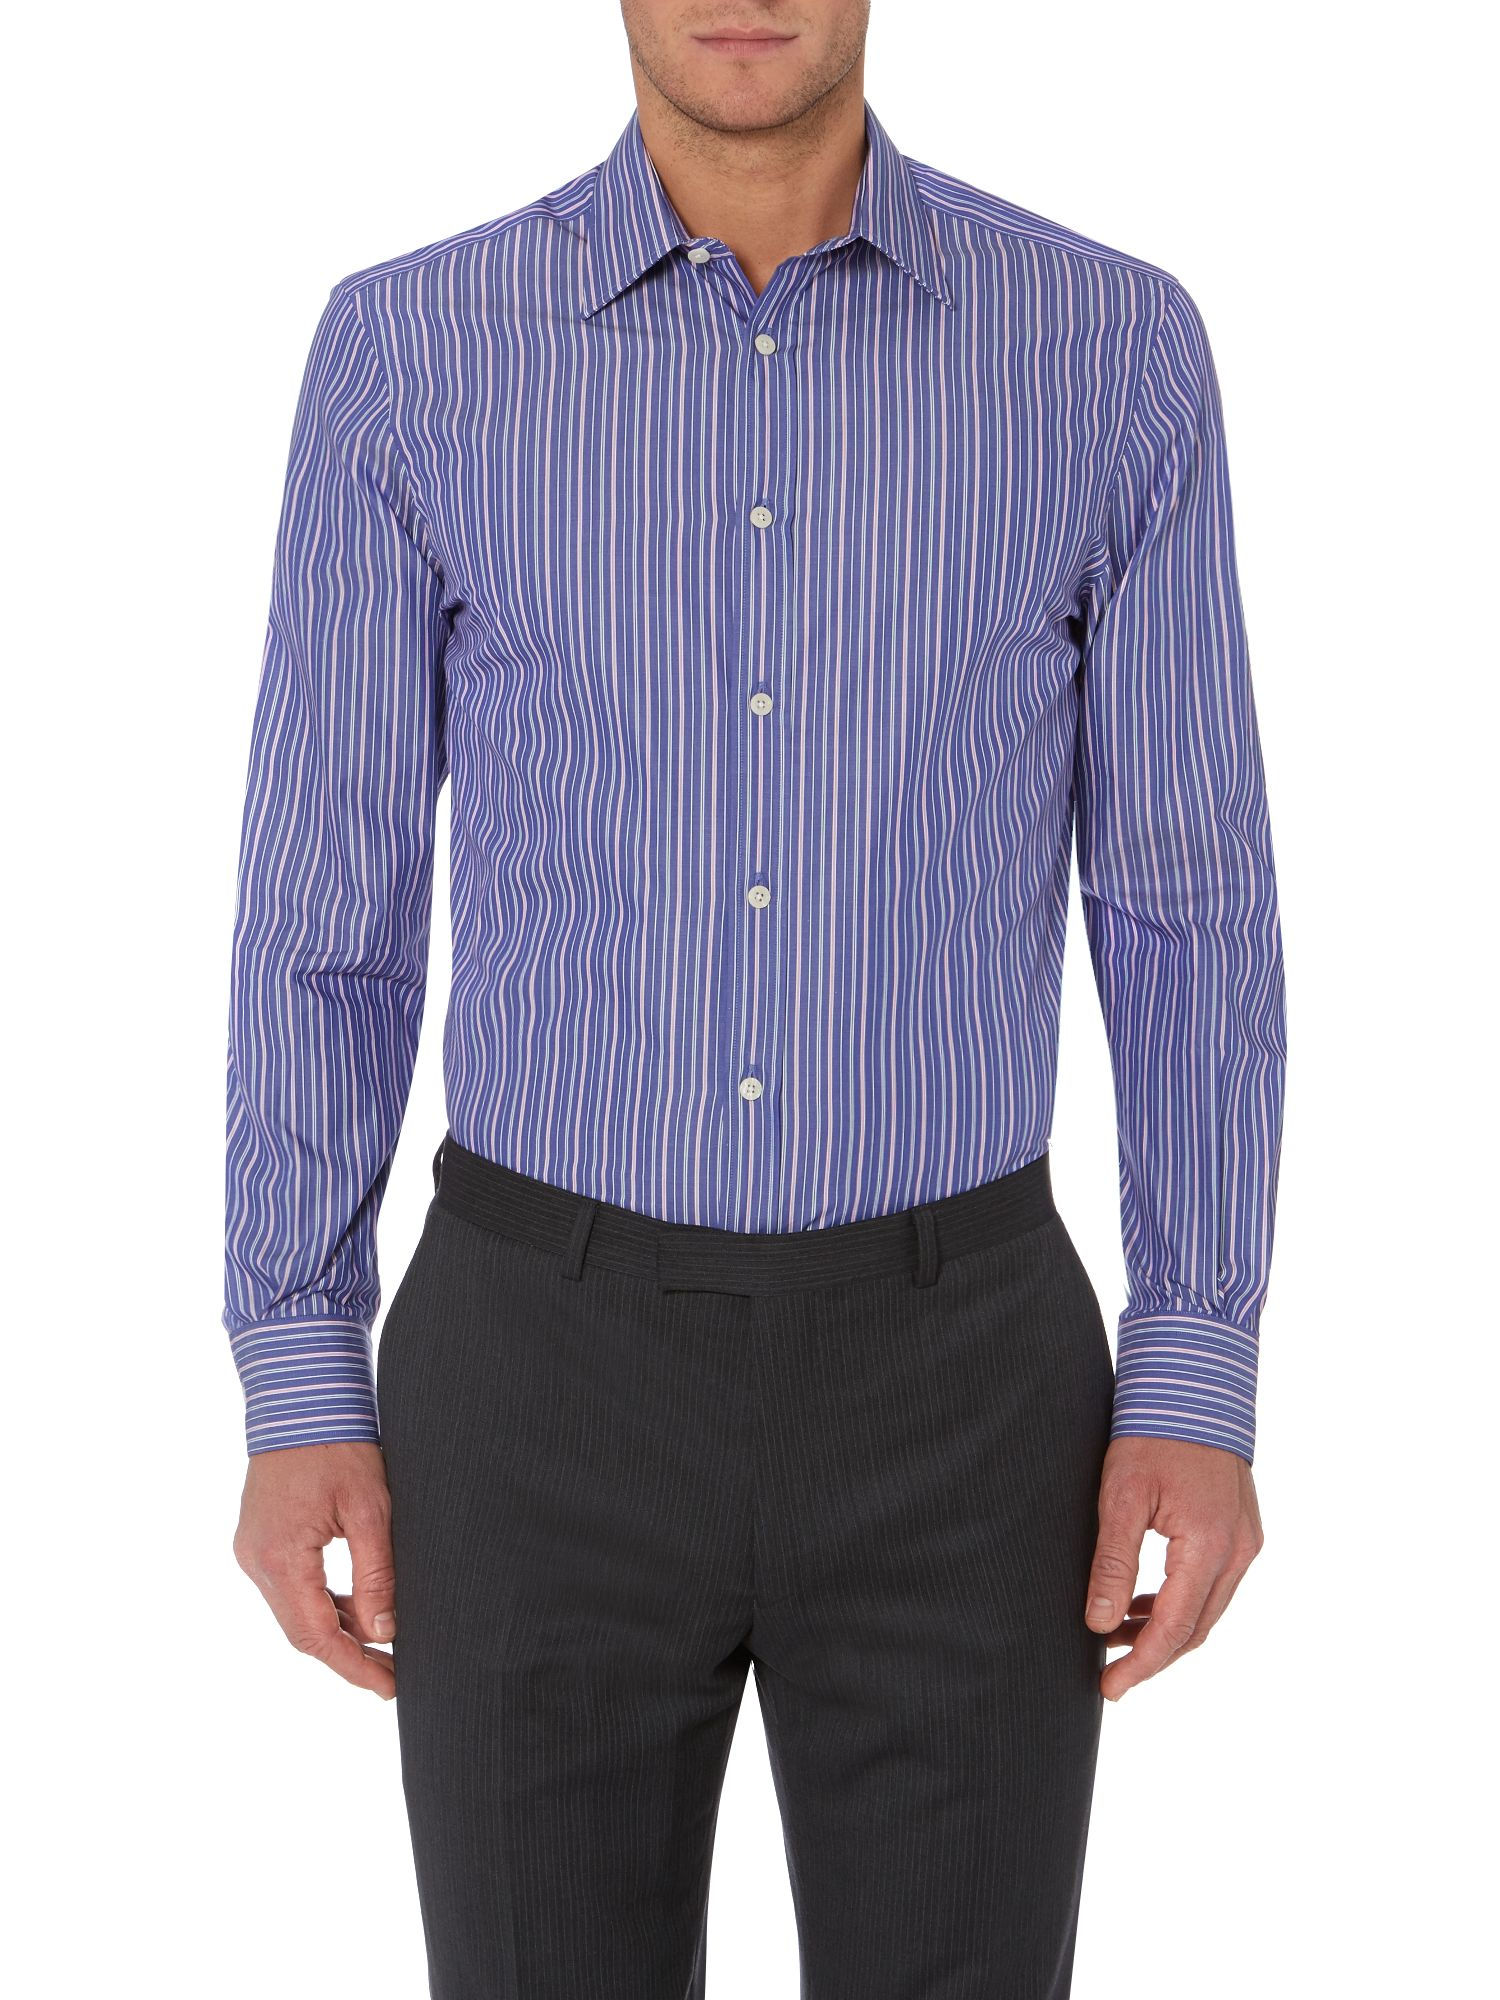 Corby fine stripes shirt